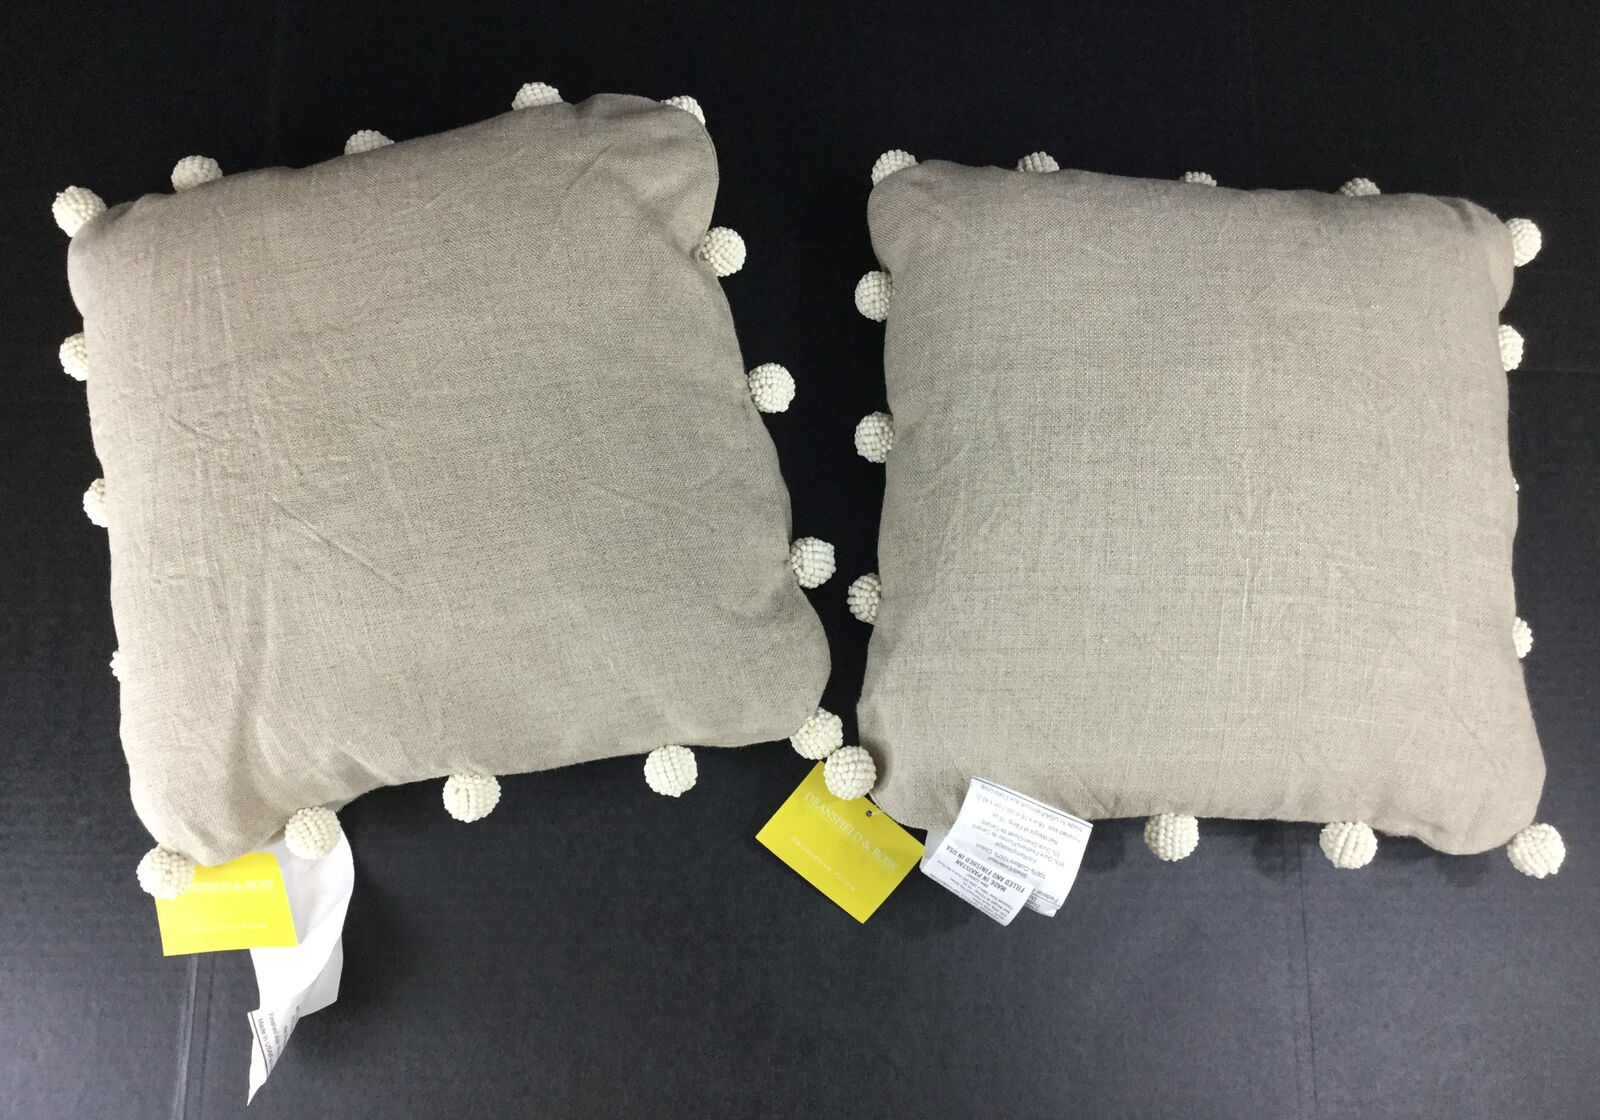 Dransfield & Ross Throw Pillows Set of 2 NWT Tan Cream Beads Zebra Down Popcorn